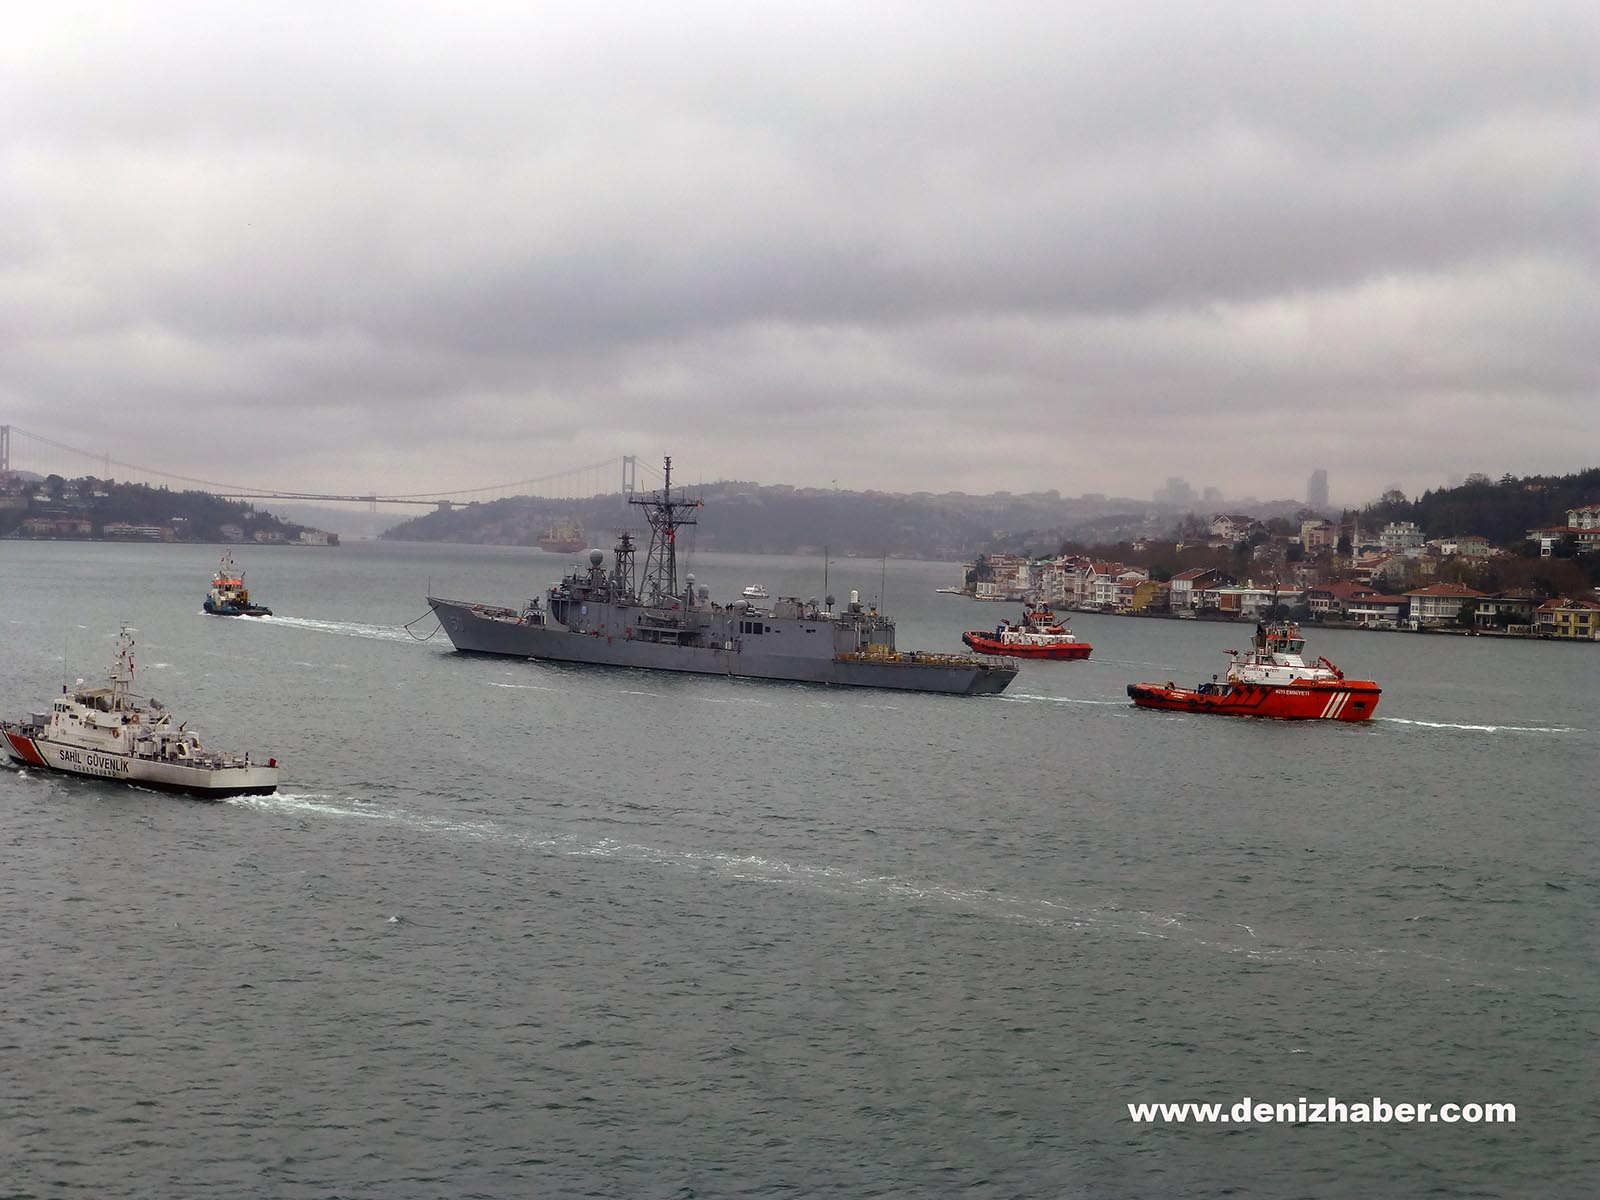 Damaged USS TAYLOR Passed Istanbul Strait under tow